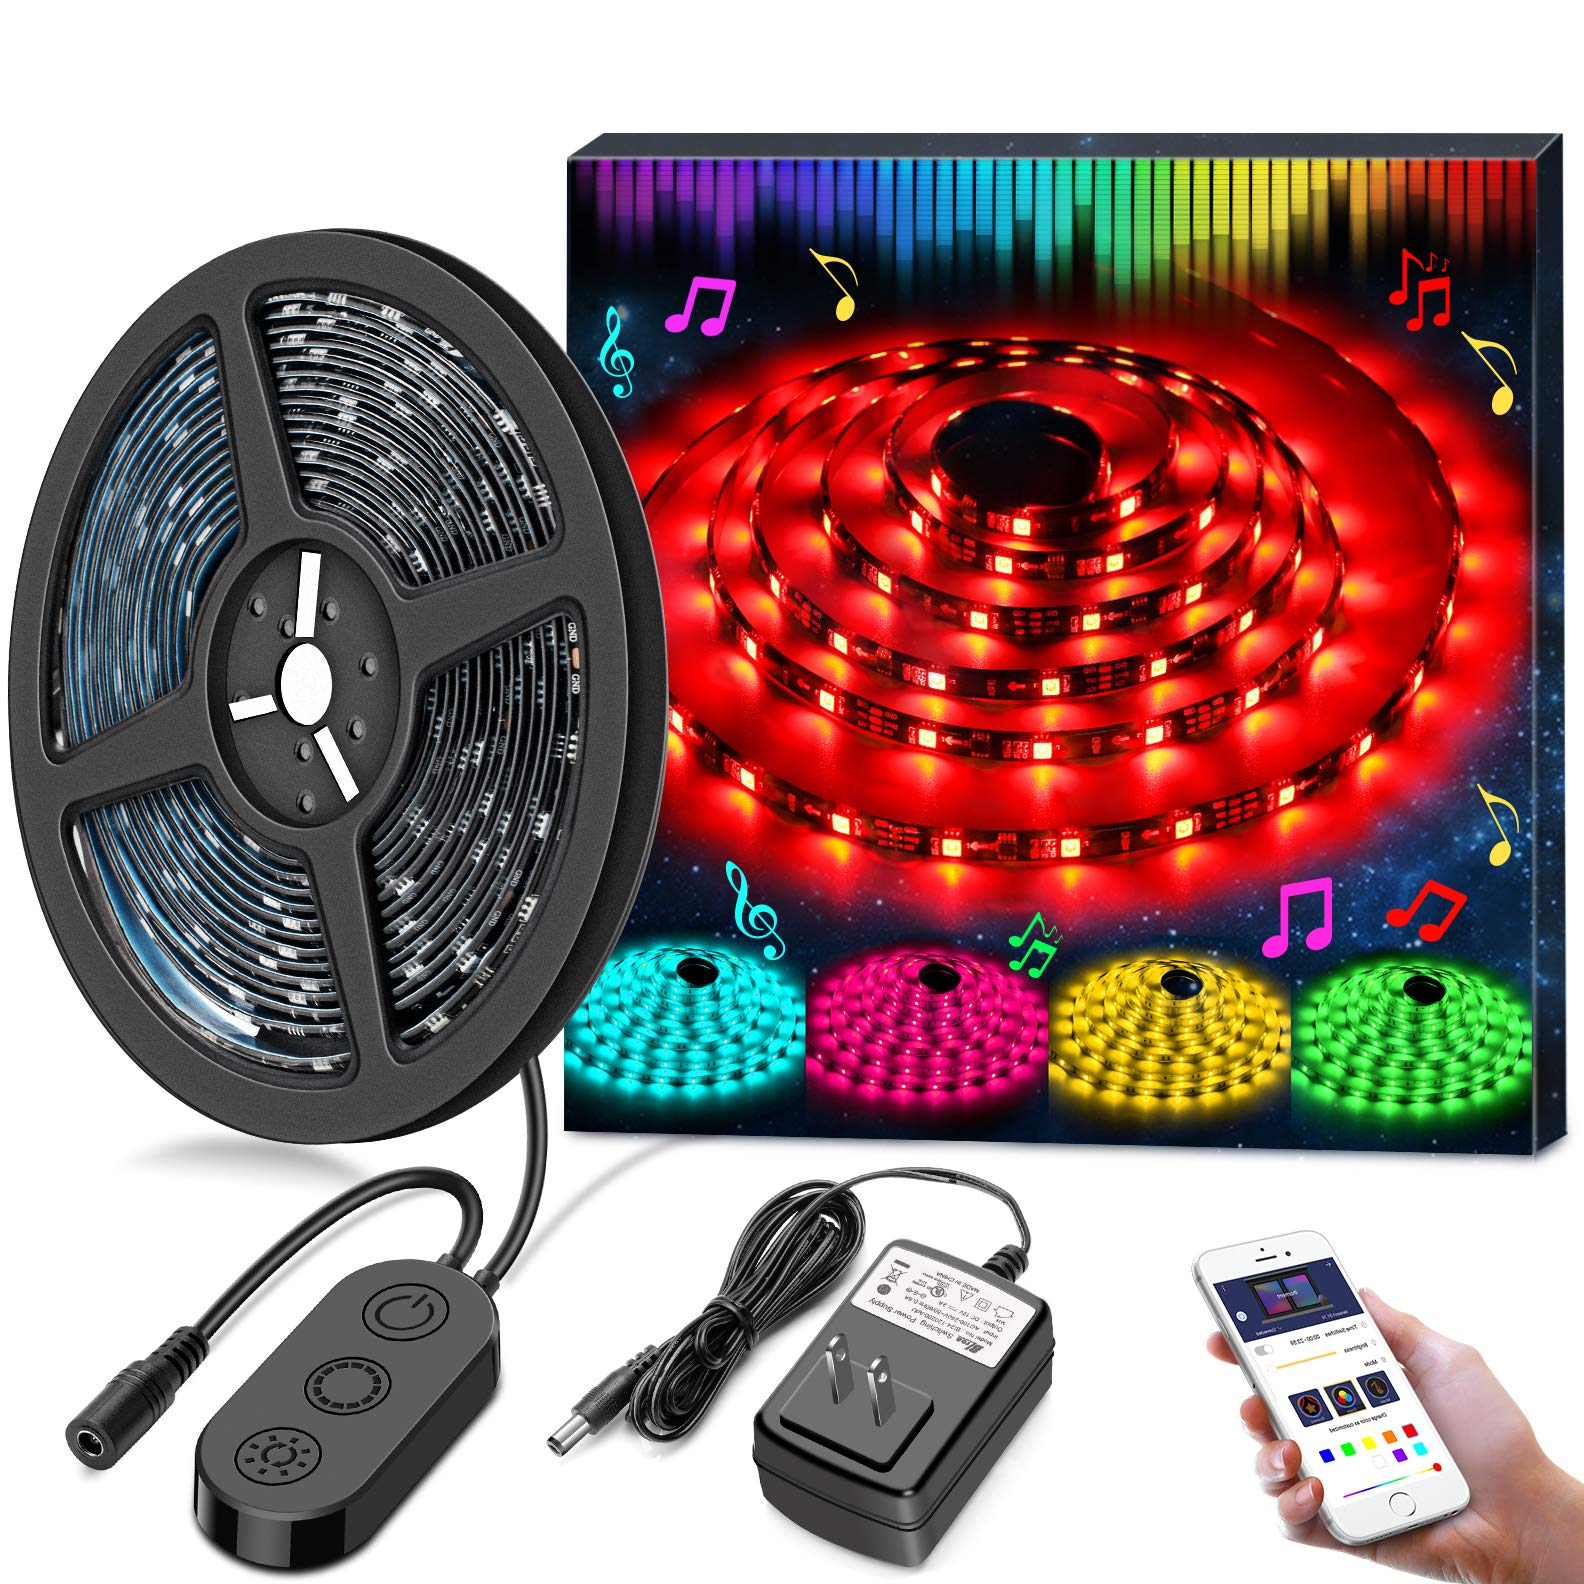 LED Strip Lights LED Tape Lights Sync to Music by APP Control, MINGER 16.4Ft/5M LED Light Strip Waterproof Flexible 5050 RGB Rope Light, 12V Strip Lighting for Bedroom Holiday Party, DC UL Listed